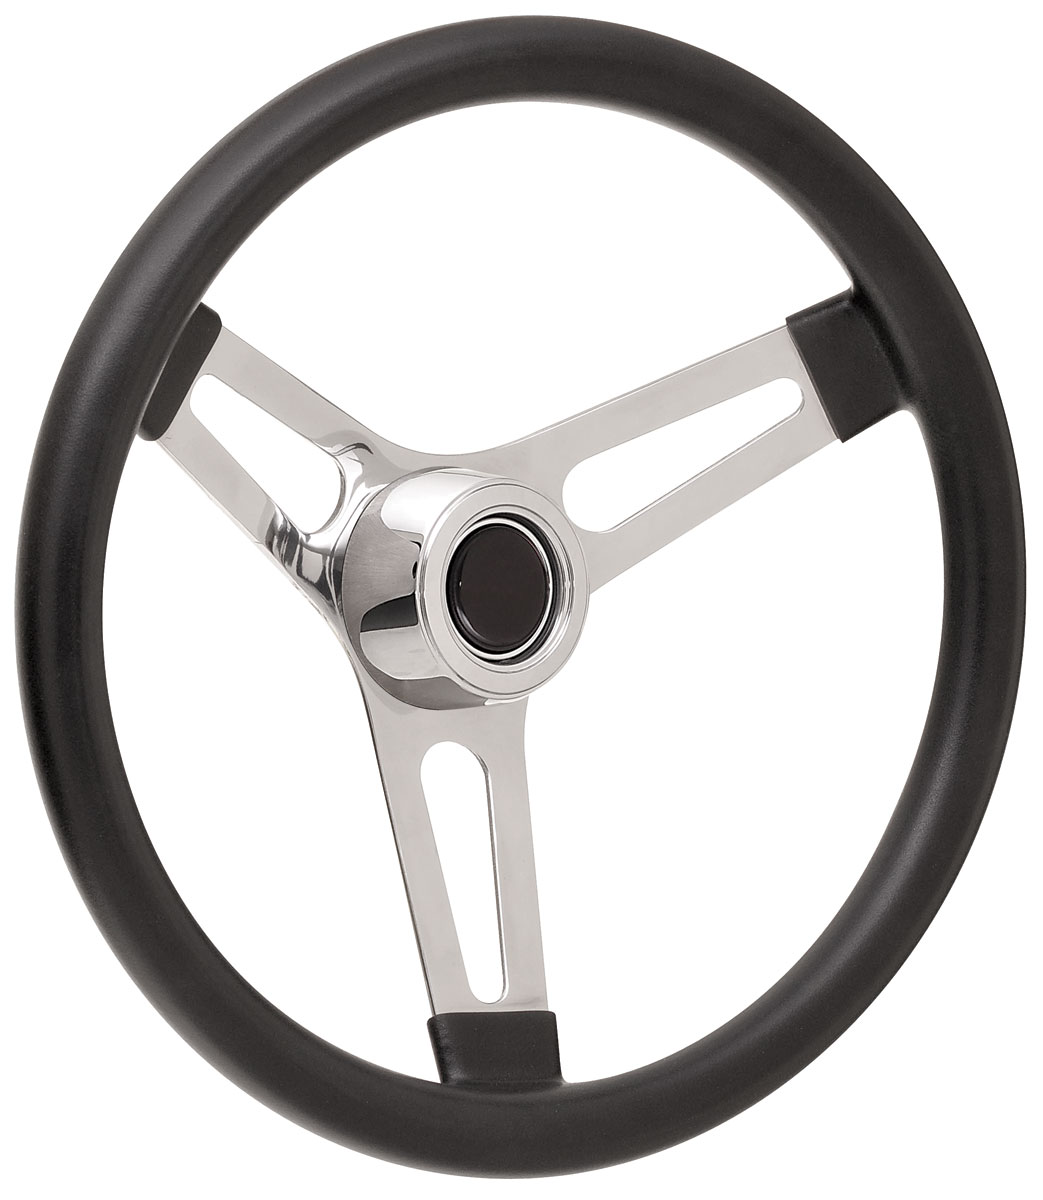 "Photo of Steering Wheel Kits, Symmetrical Style Hi-Rise Cap - Polished 3-1/4"" dish with black center"